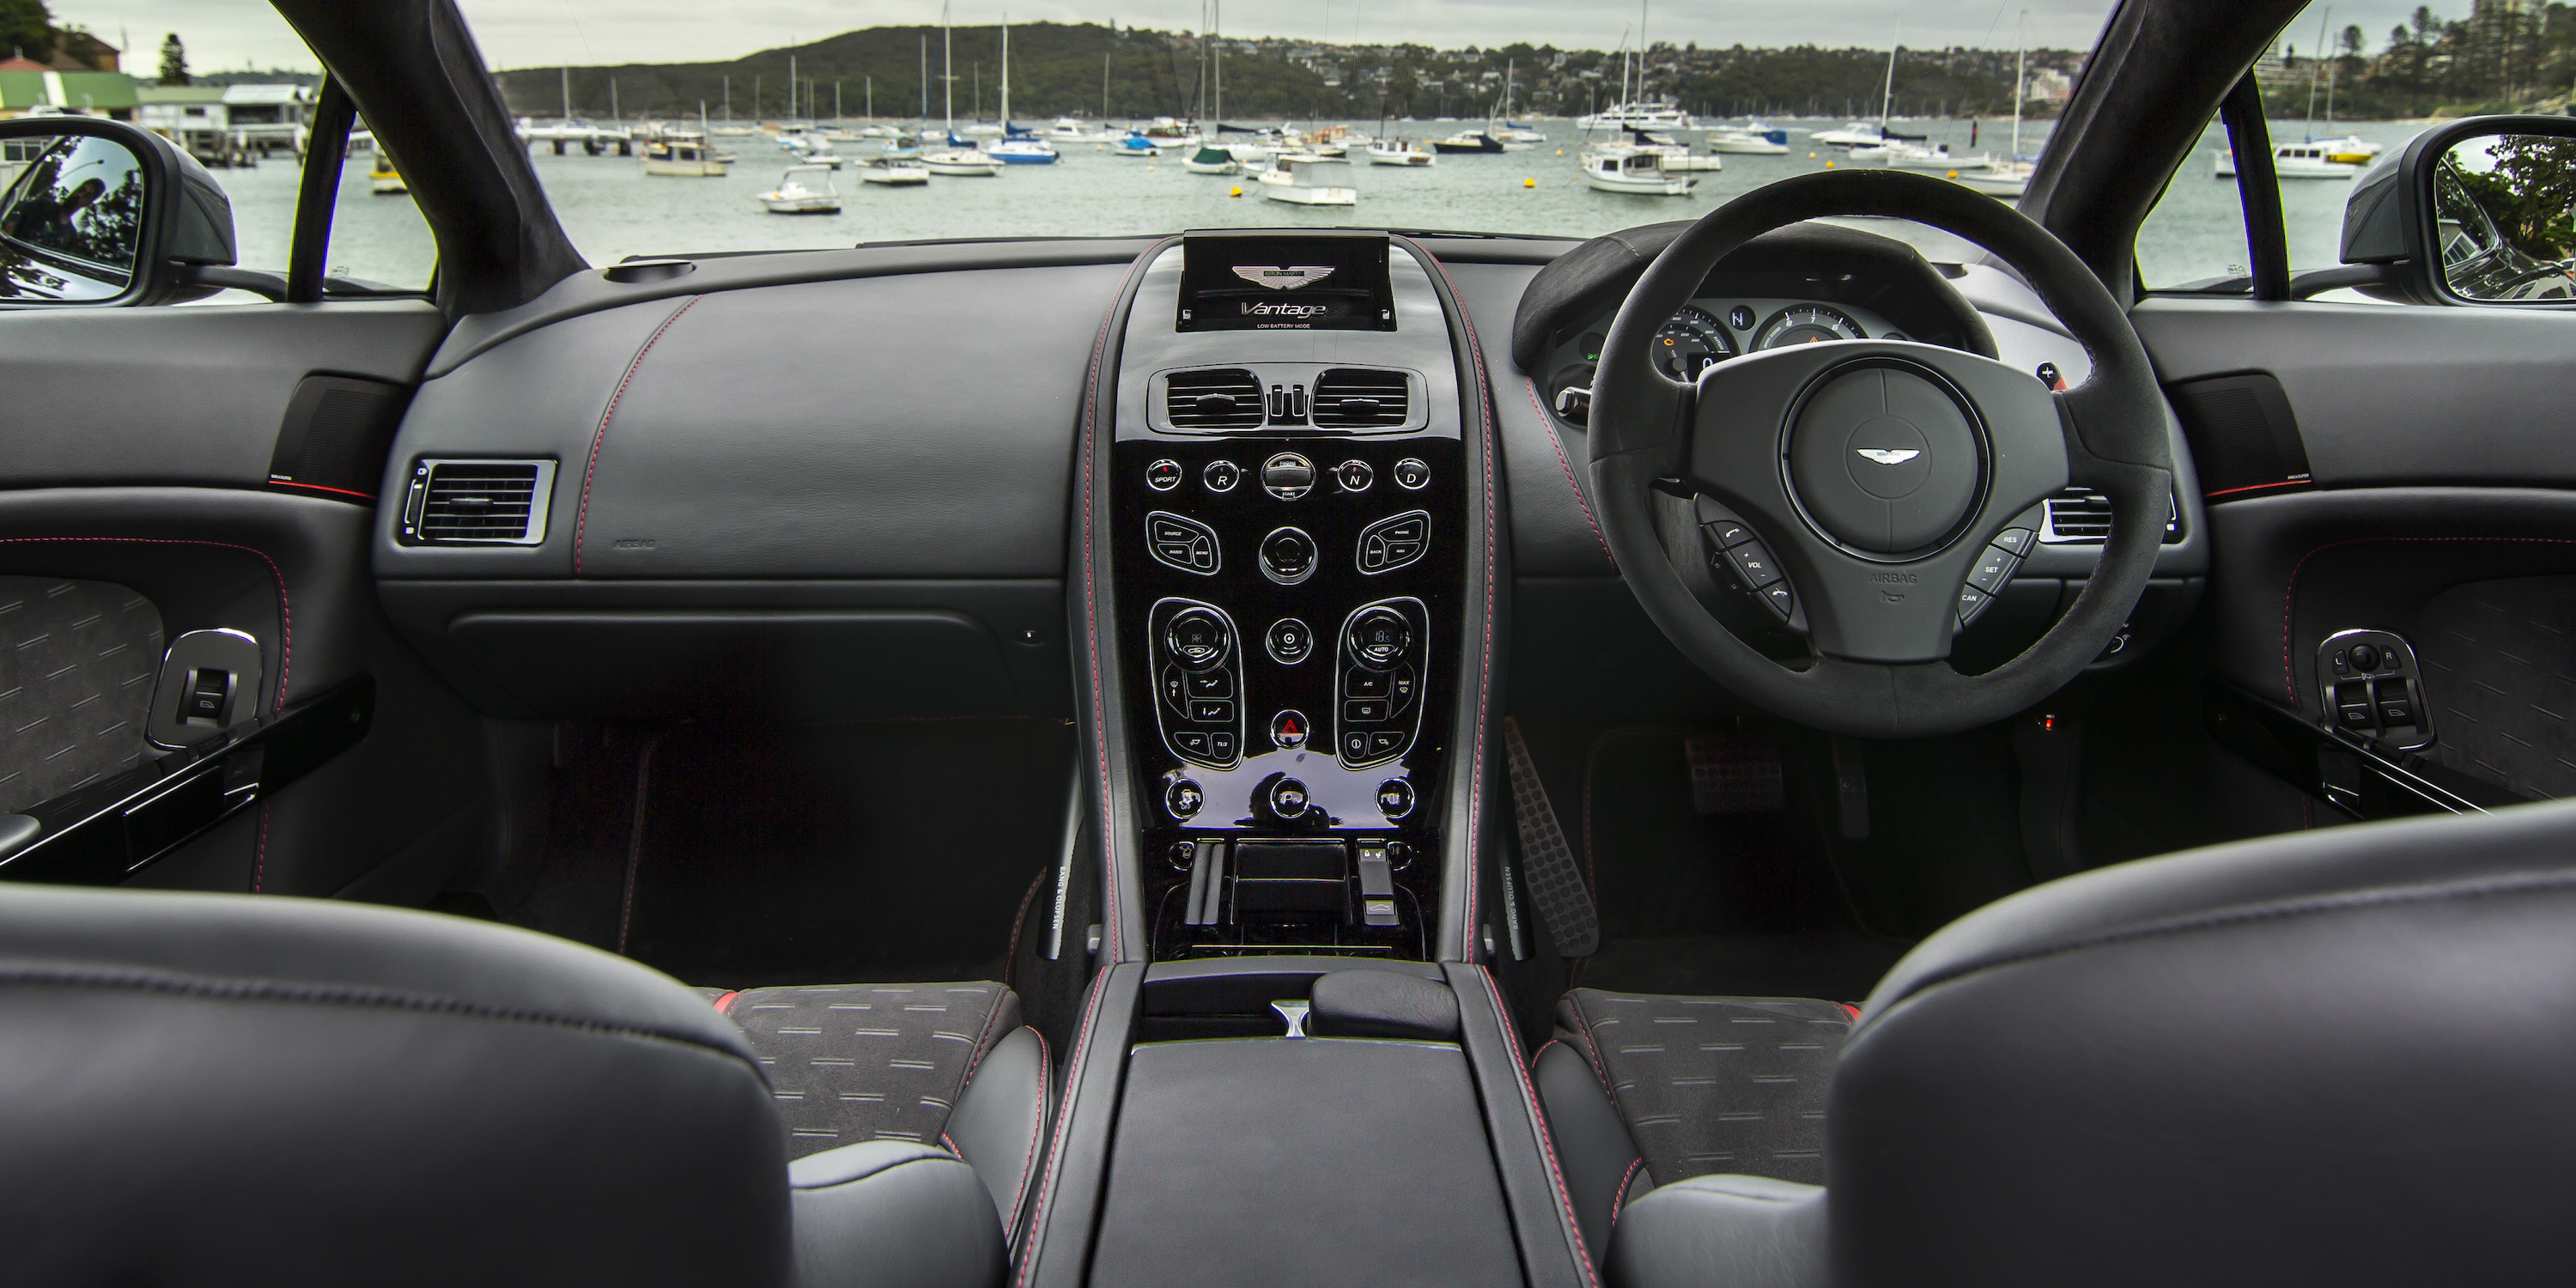 2016 Aston Martin Vantage Gt Interior (View 4 of 25)